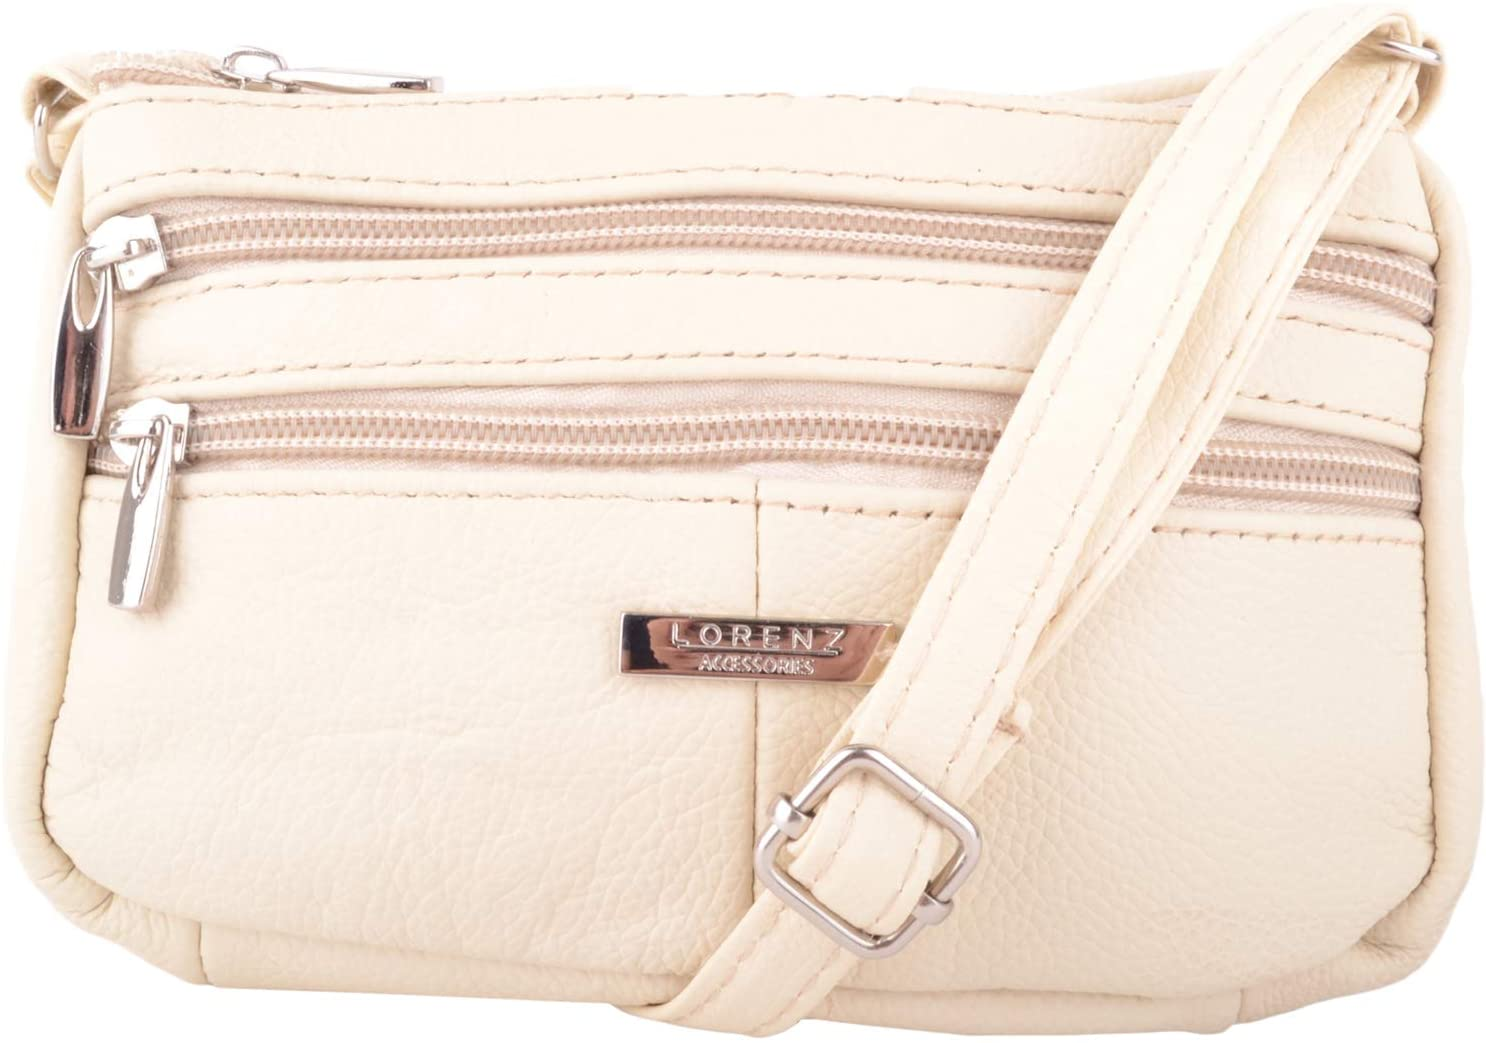 Real Leather Cross Body Bag with Double Shoulder Strap (Beige)